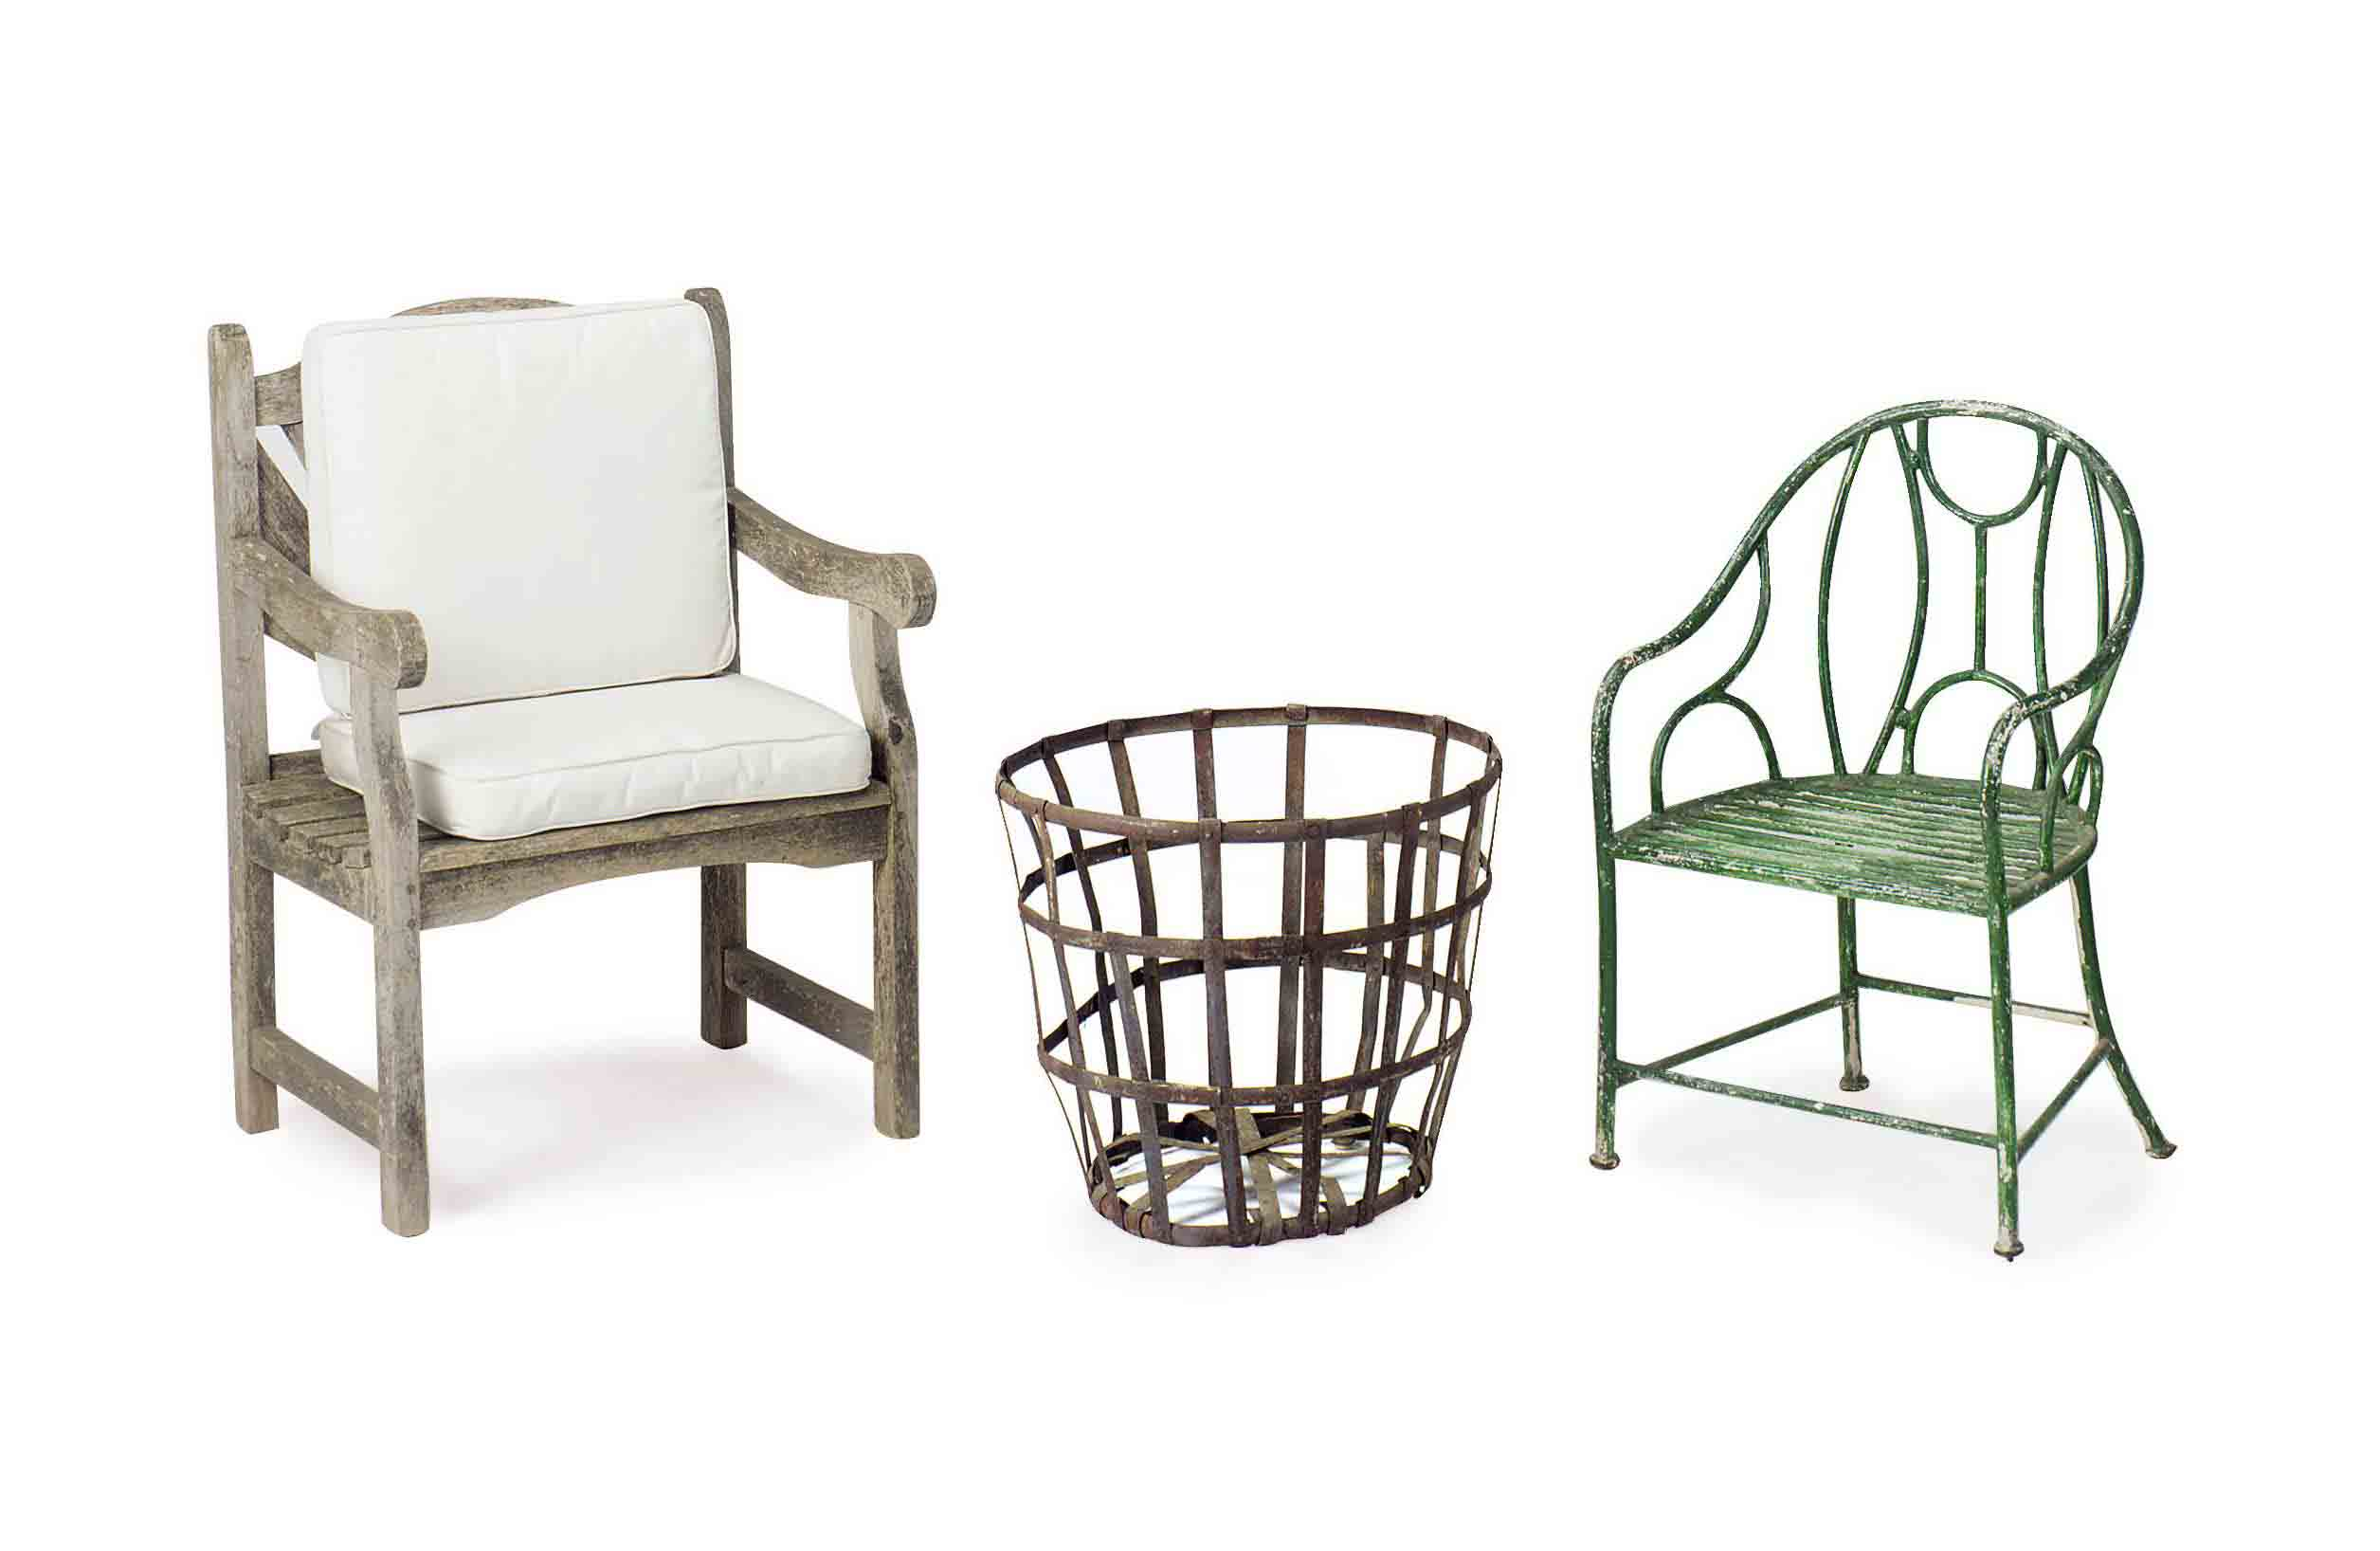 TWO GARDEN CHAIRS,